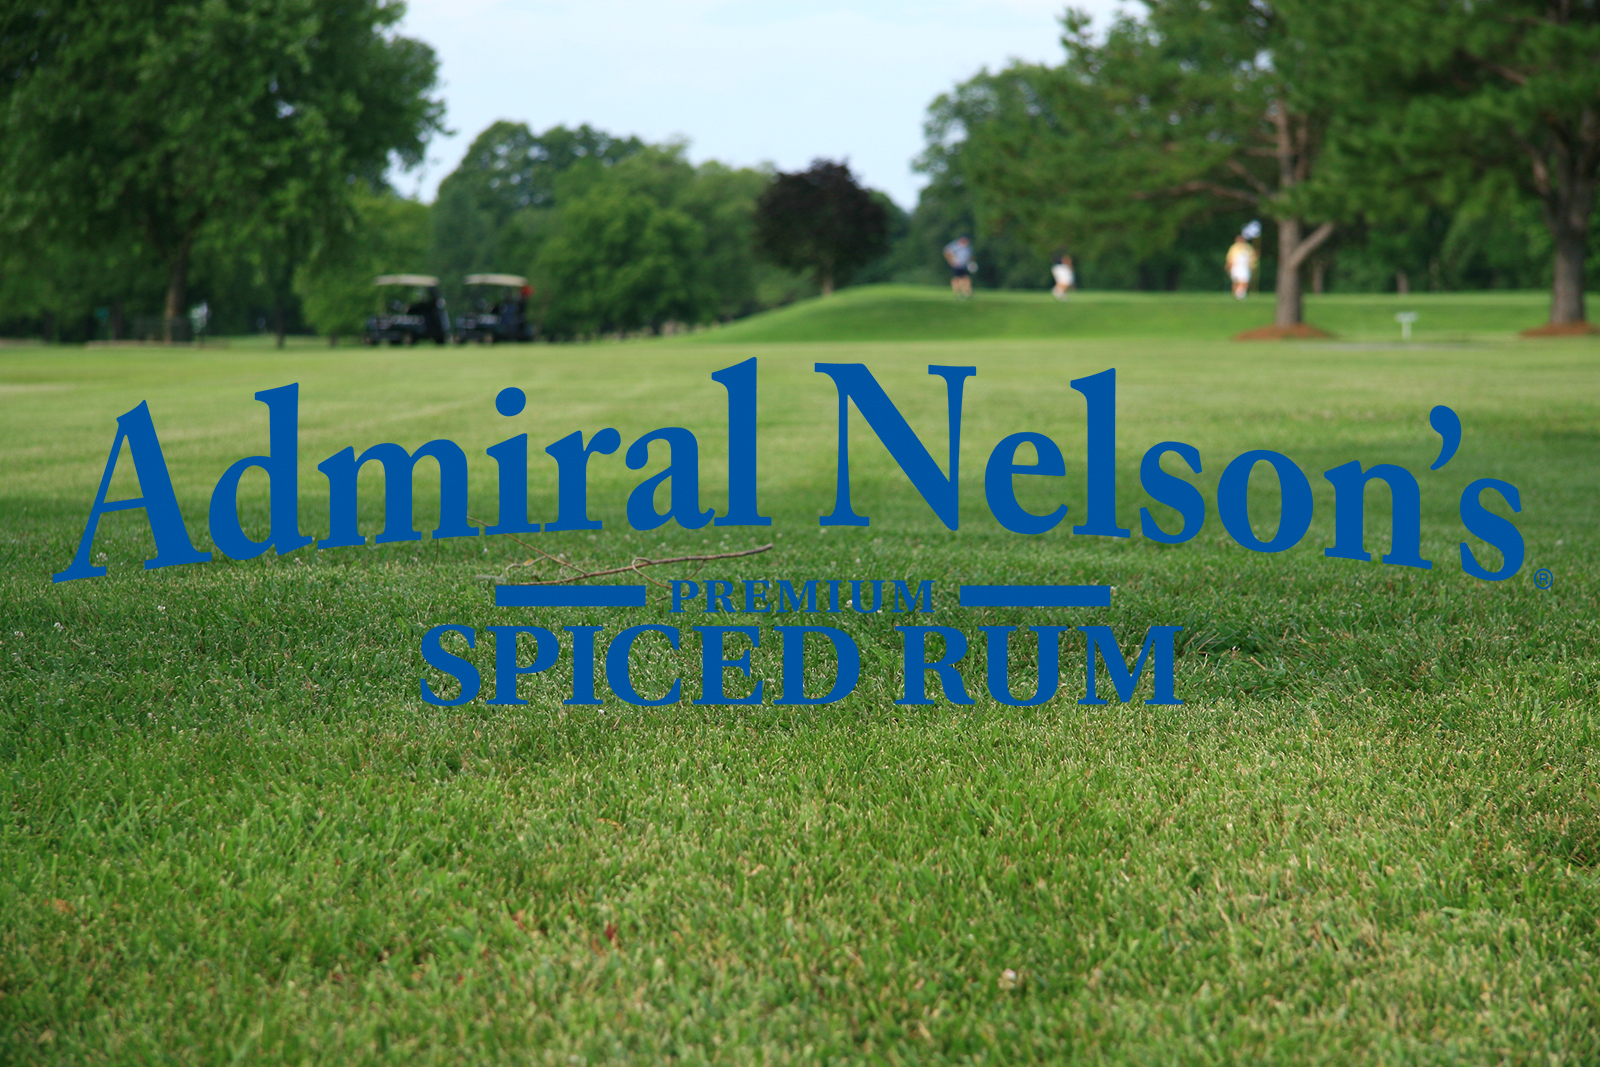 Admiral-Nelsons-19th-Hole-Golf-Altitude.jpg